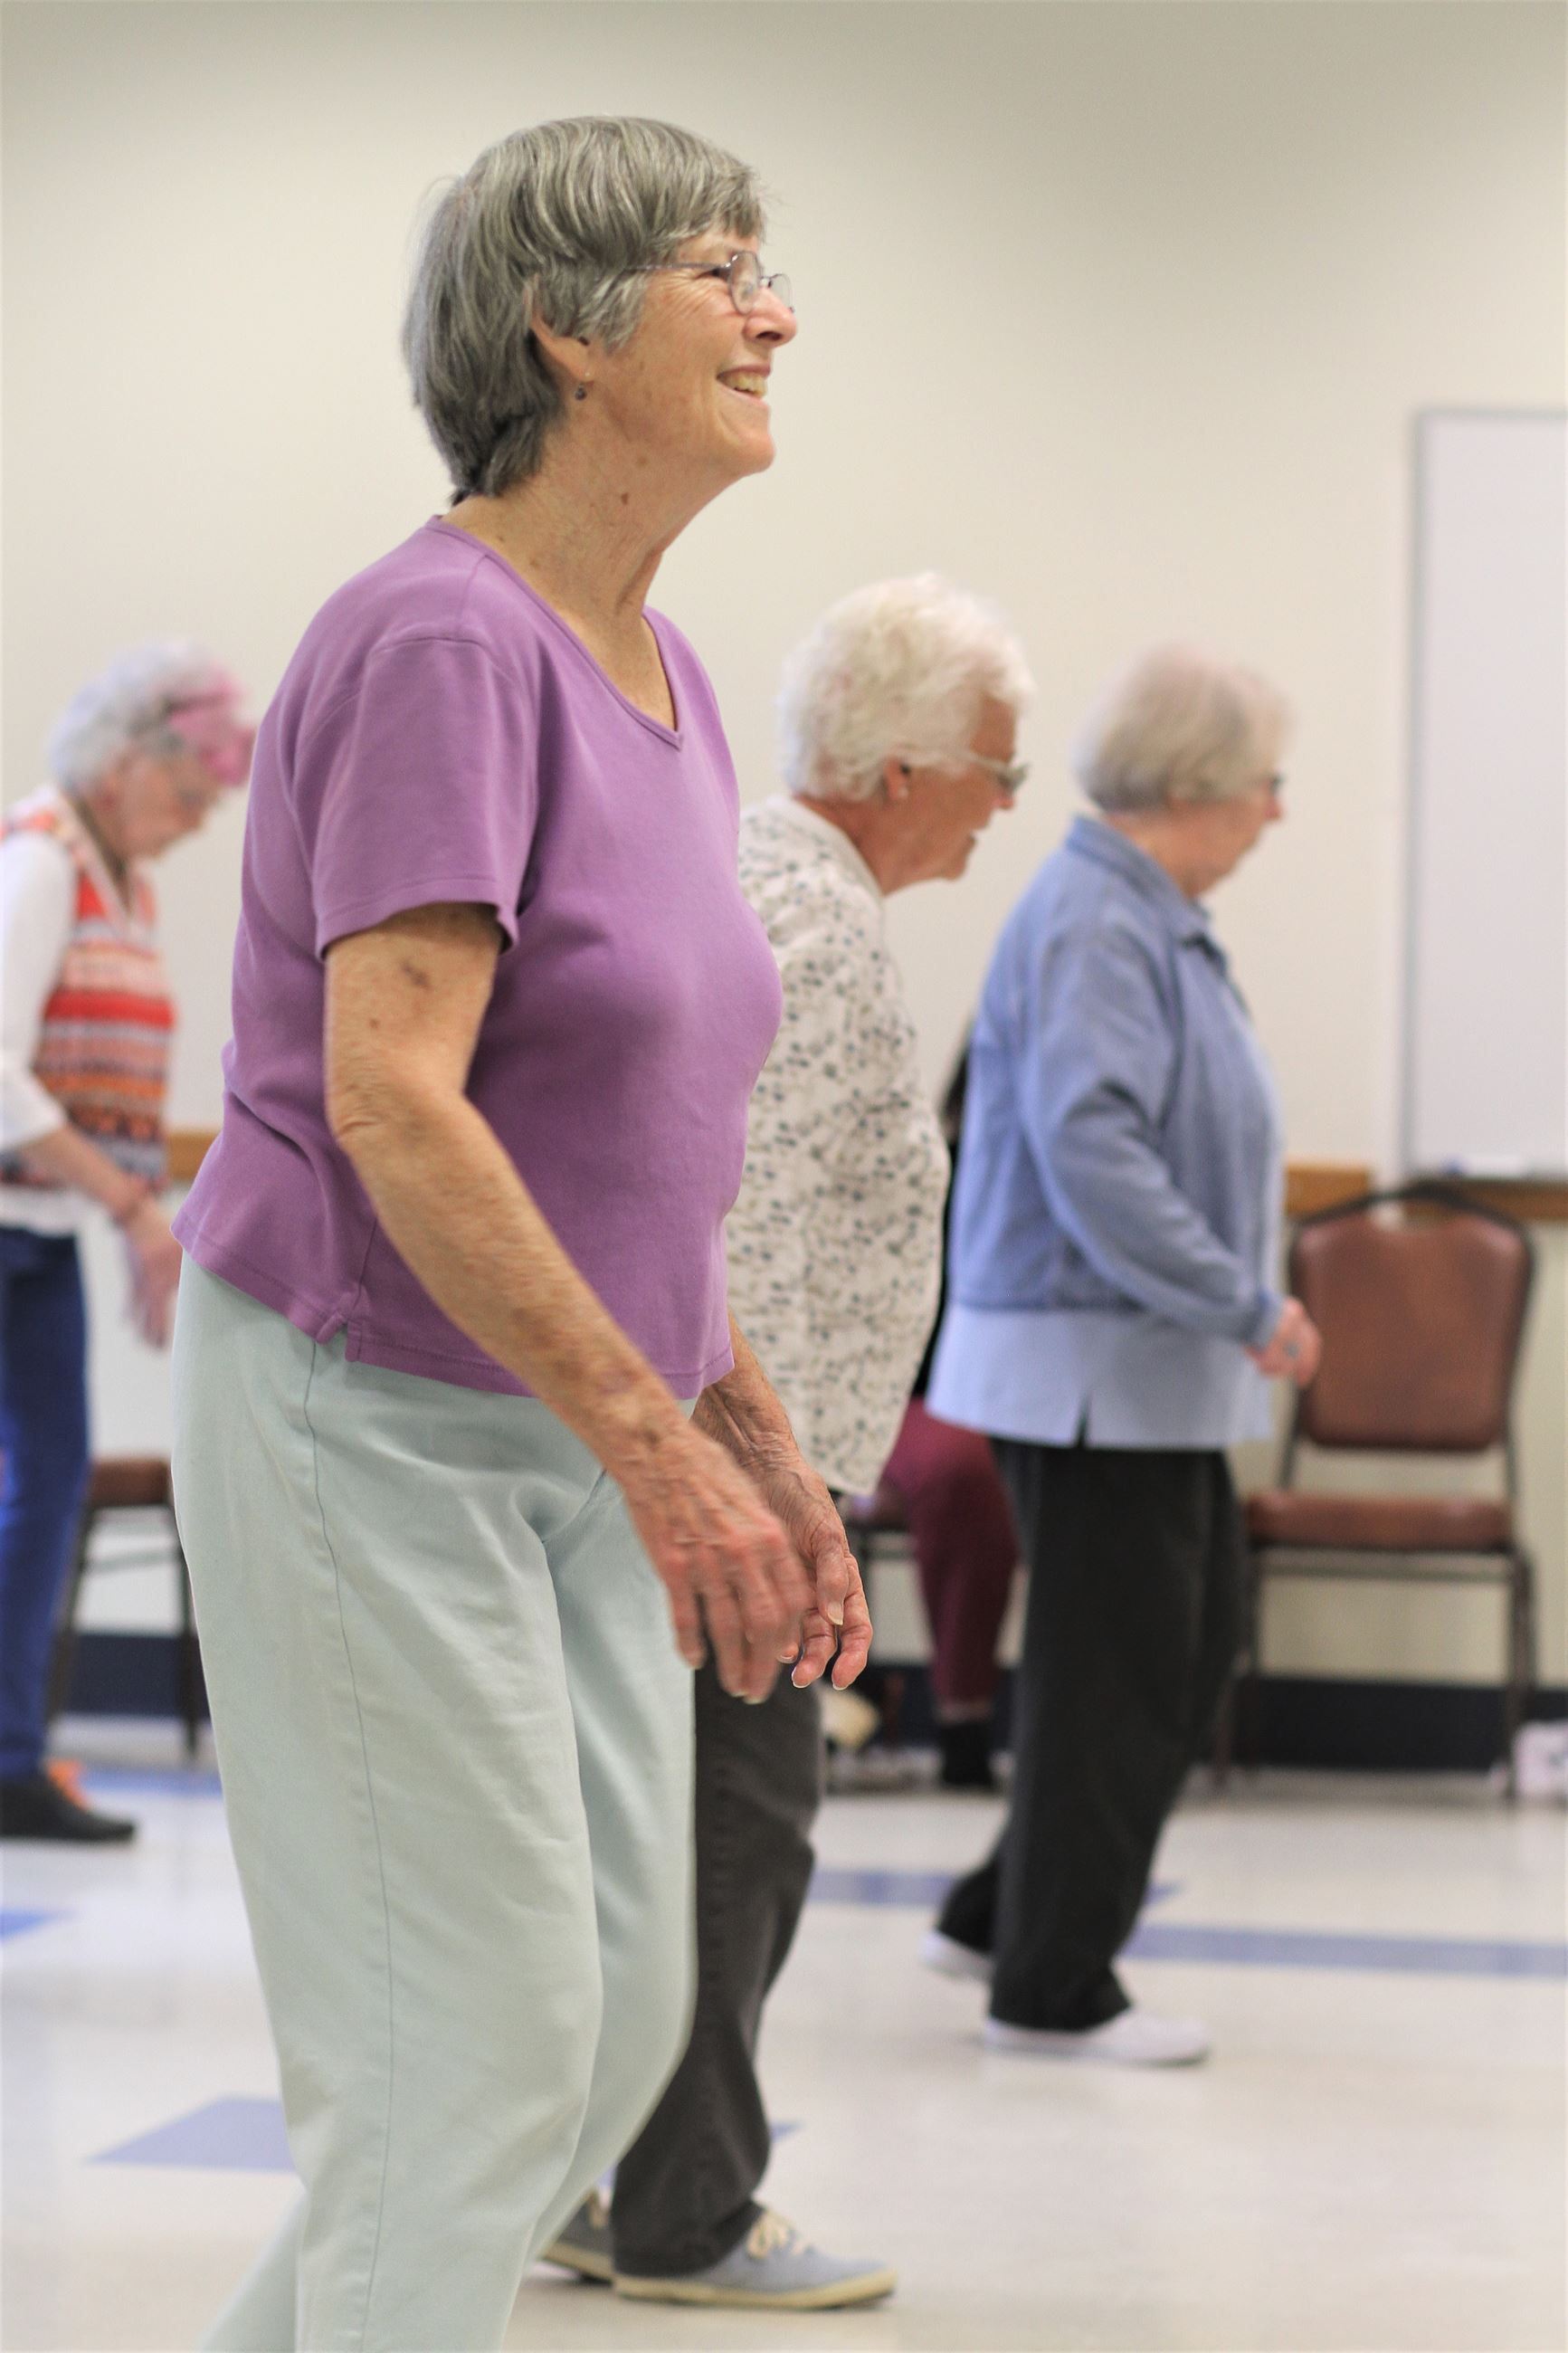 Our members enjoy clogging at senior center on Fridays